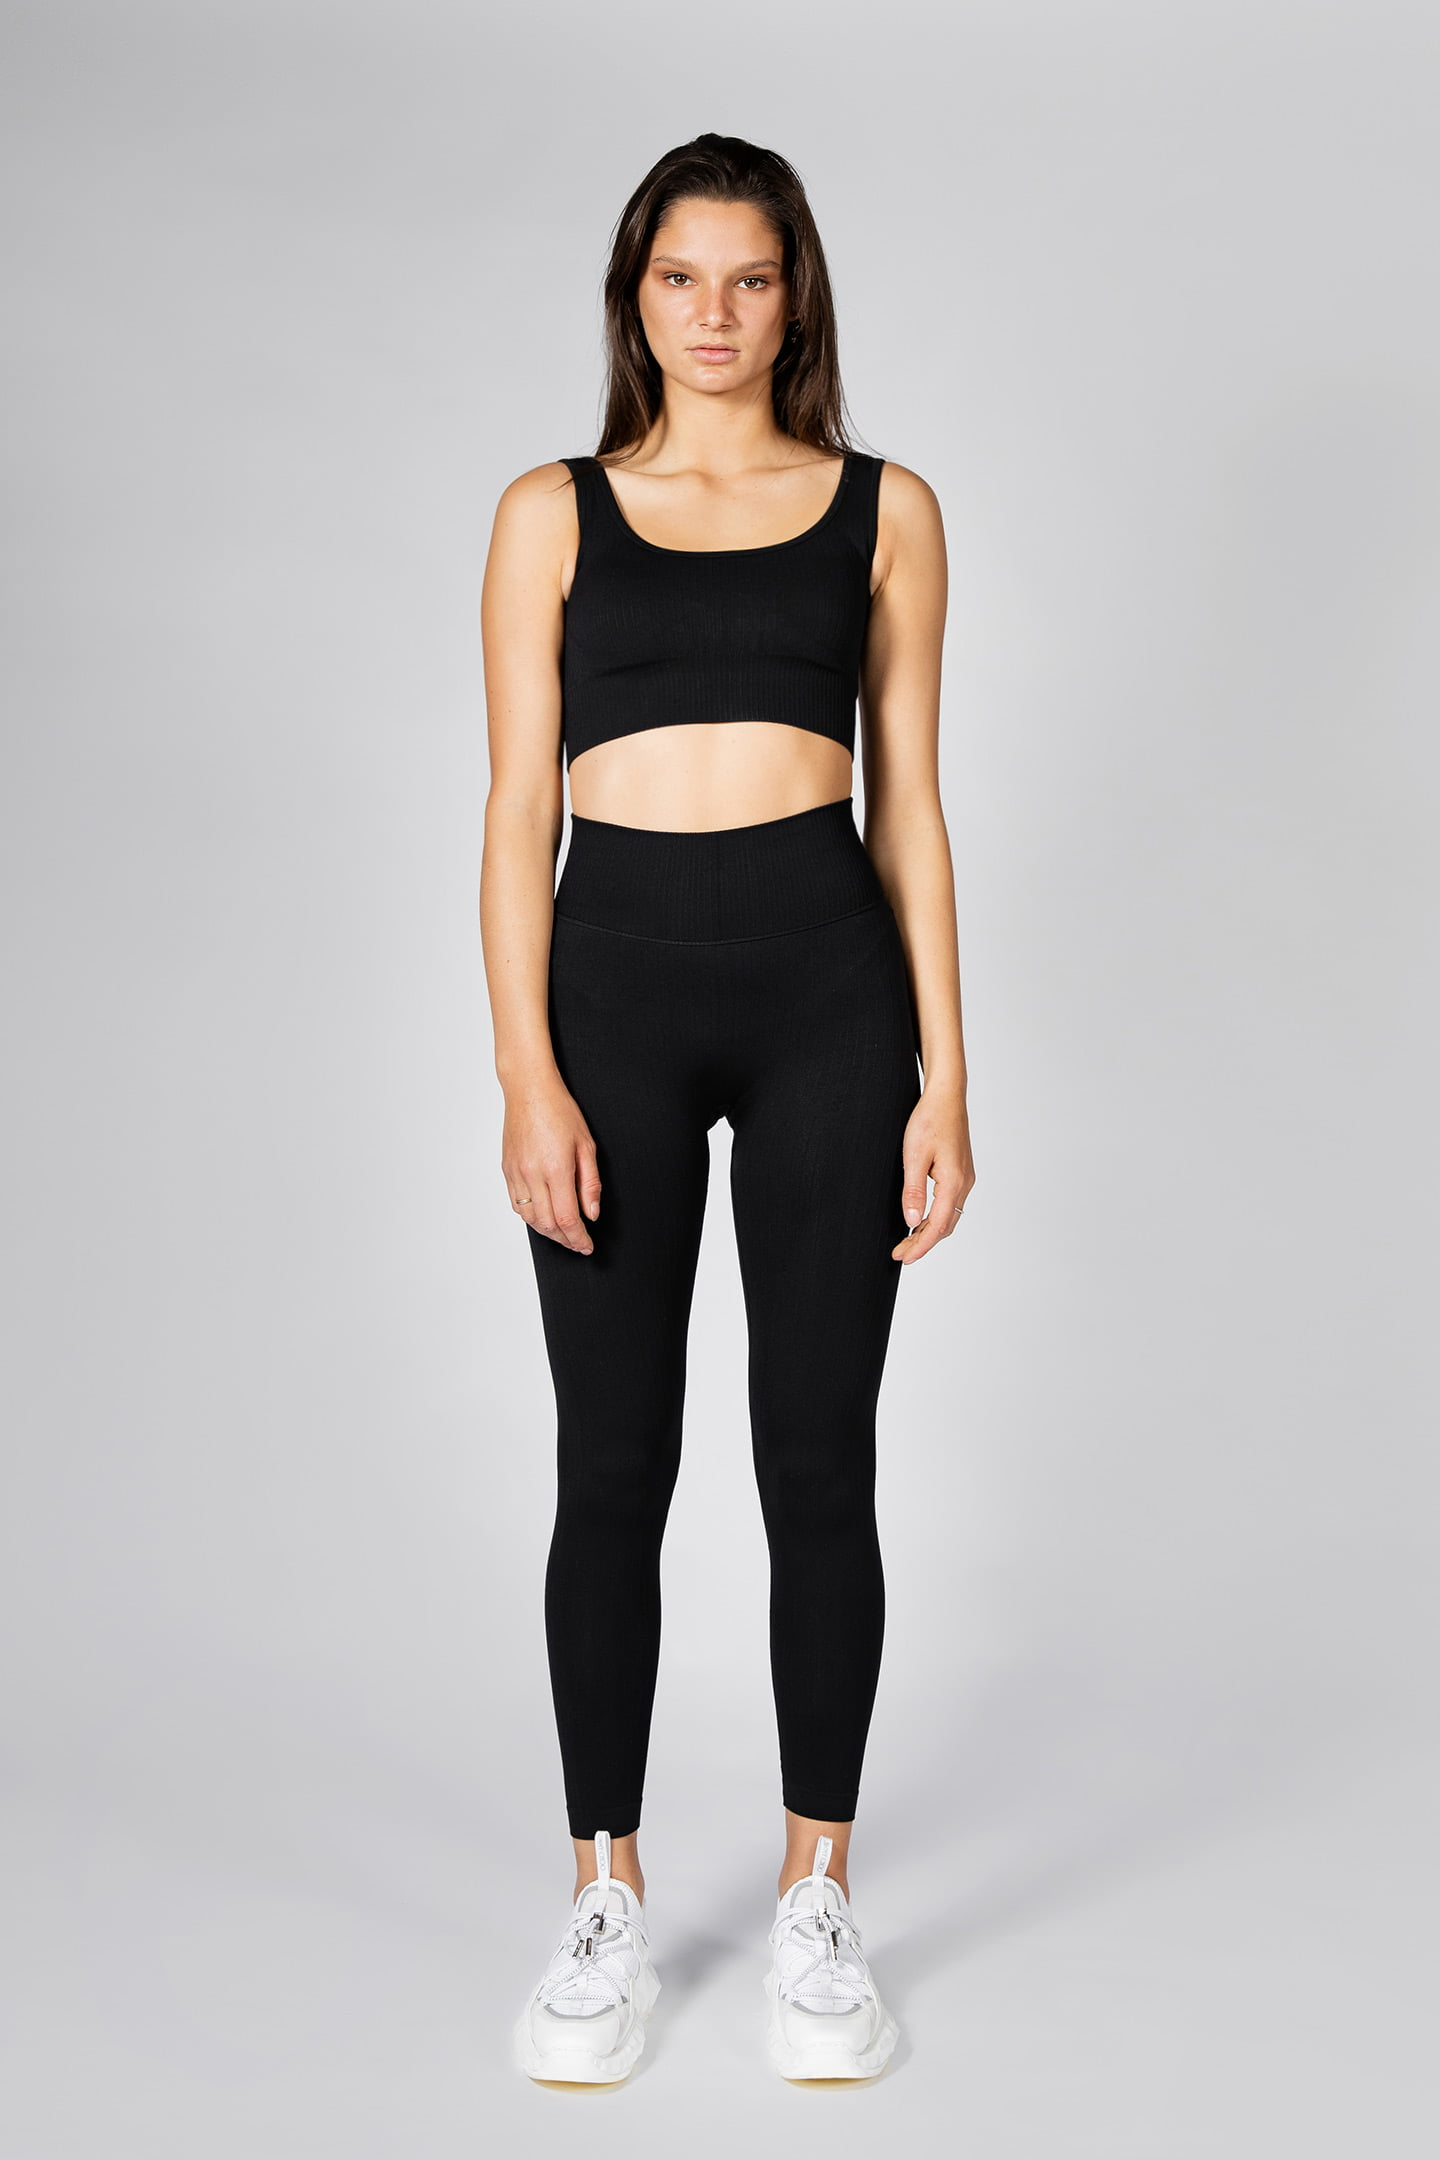 model posing in seamless ribbed workout leggings and seamless sports bra in black colour